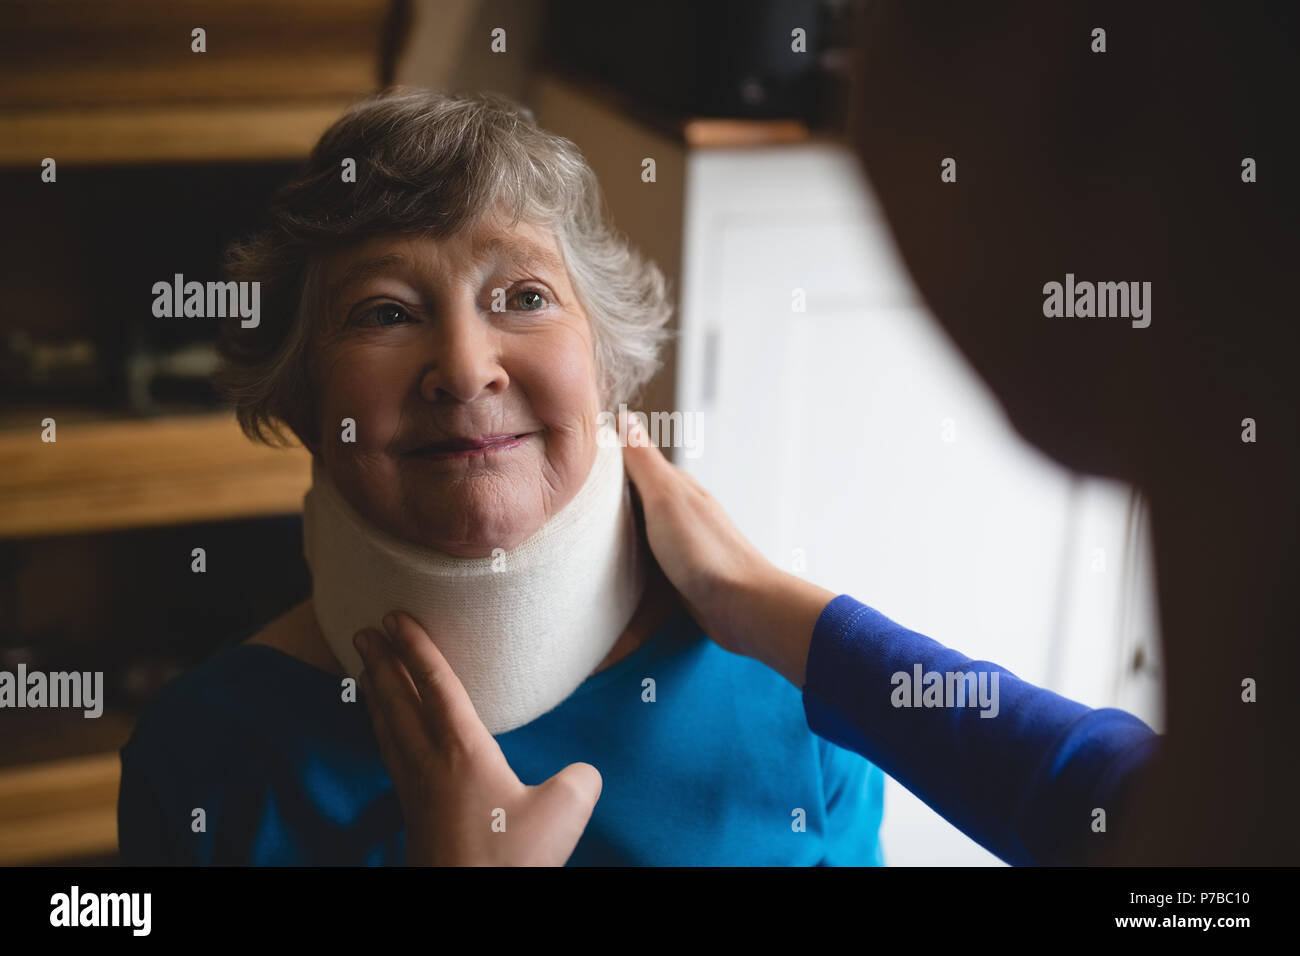 Physiotherapist setting cervical collar on senior woman - Stock Image